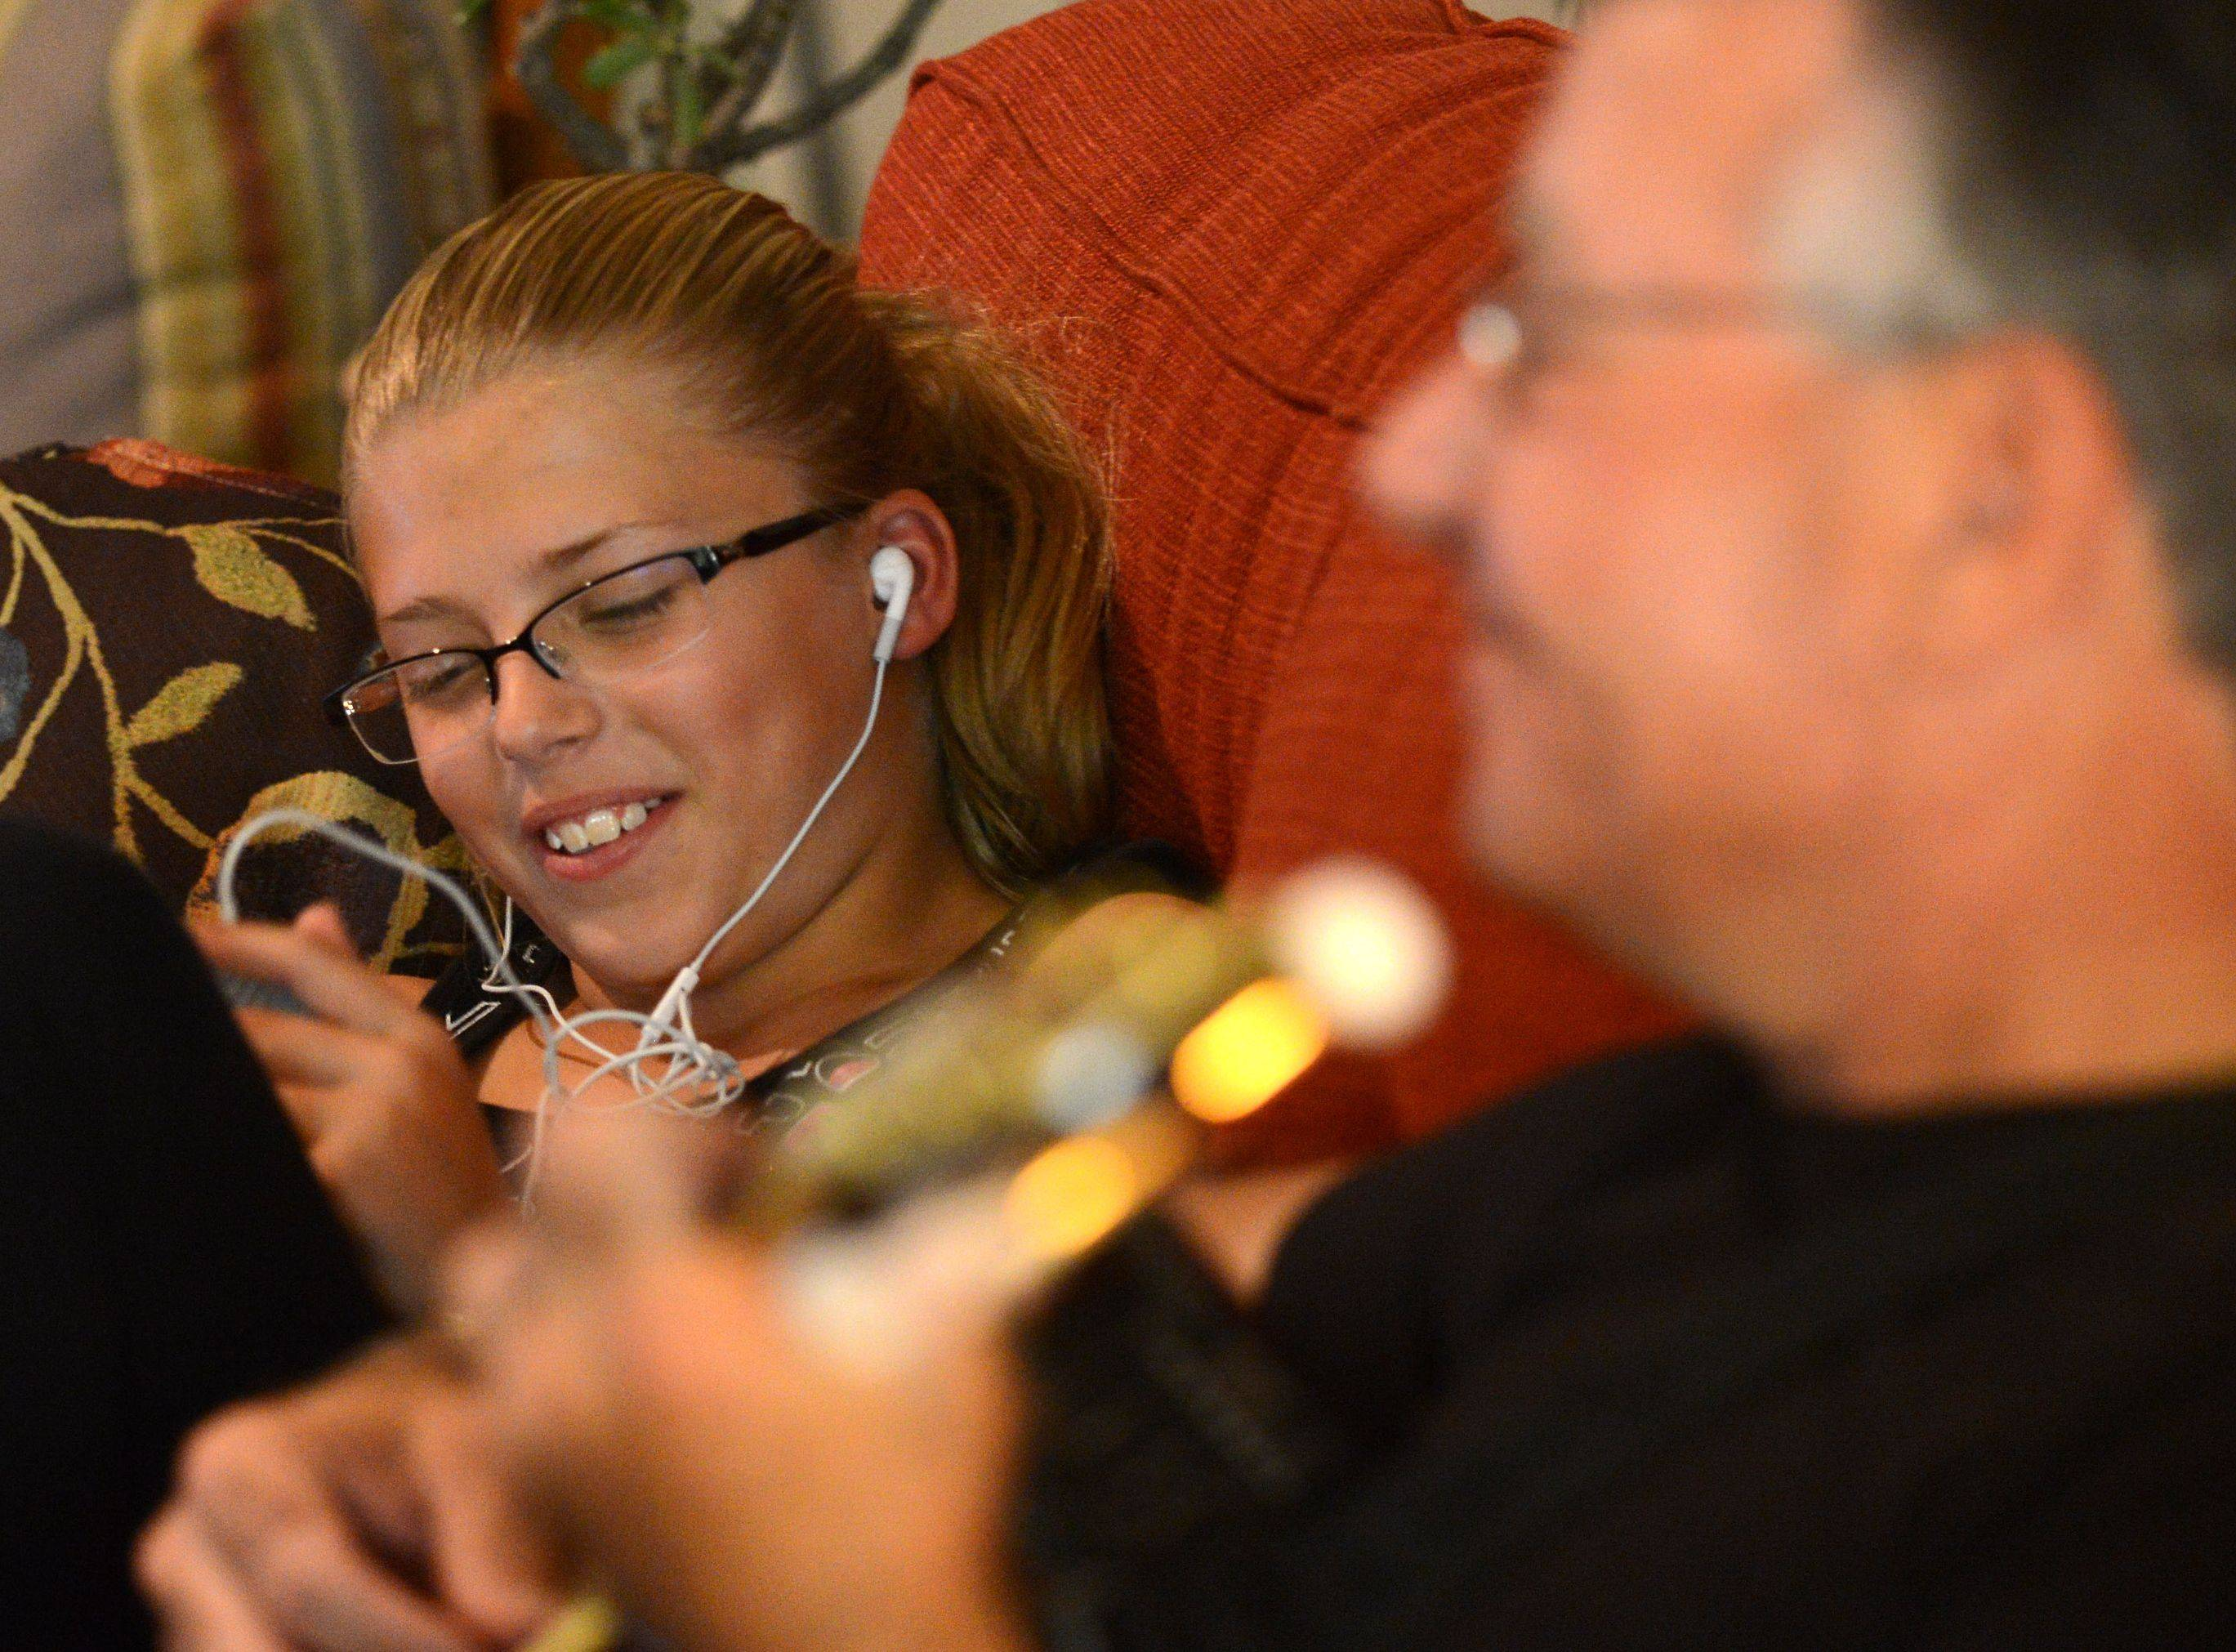 Michael McMein of East Dundee plays guitar while his granddaughter Olivia plays with her iPad at their home in East Dundee.